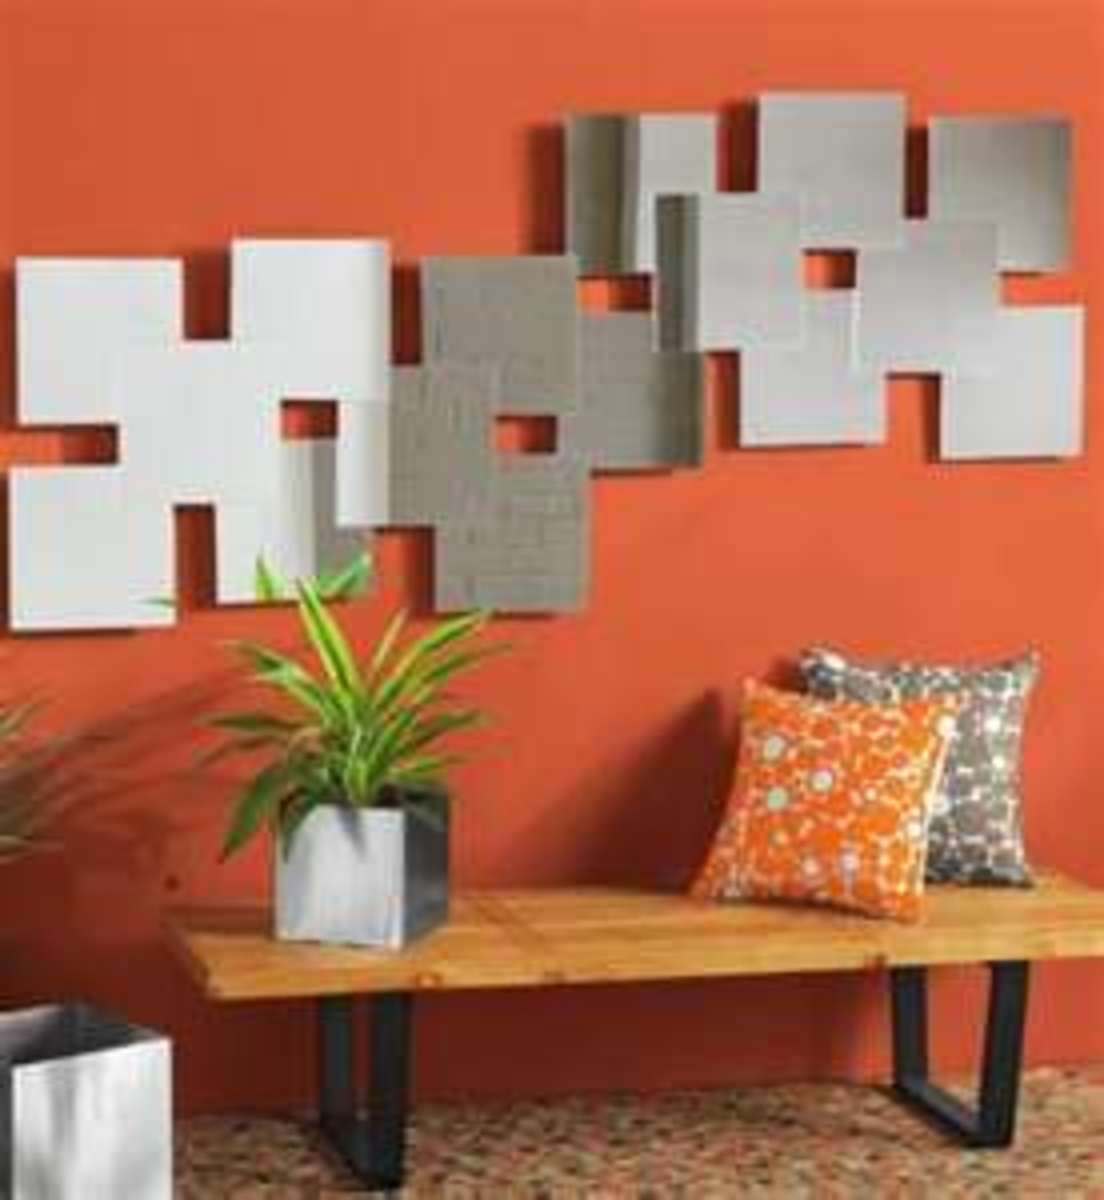 Image credit: http://www.modern-furniture-design.com/modern-wall-art.html